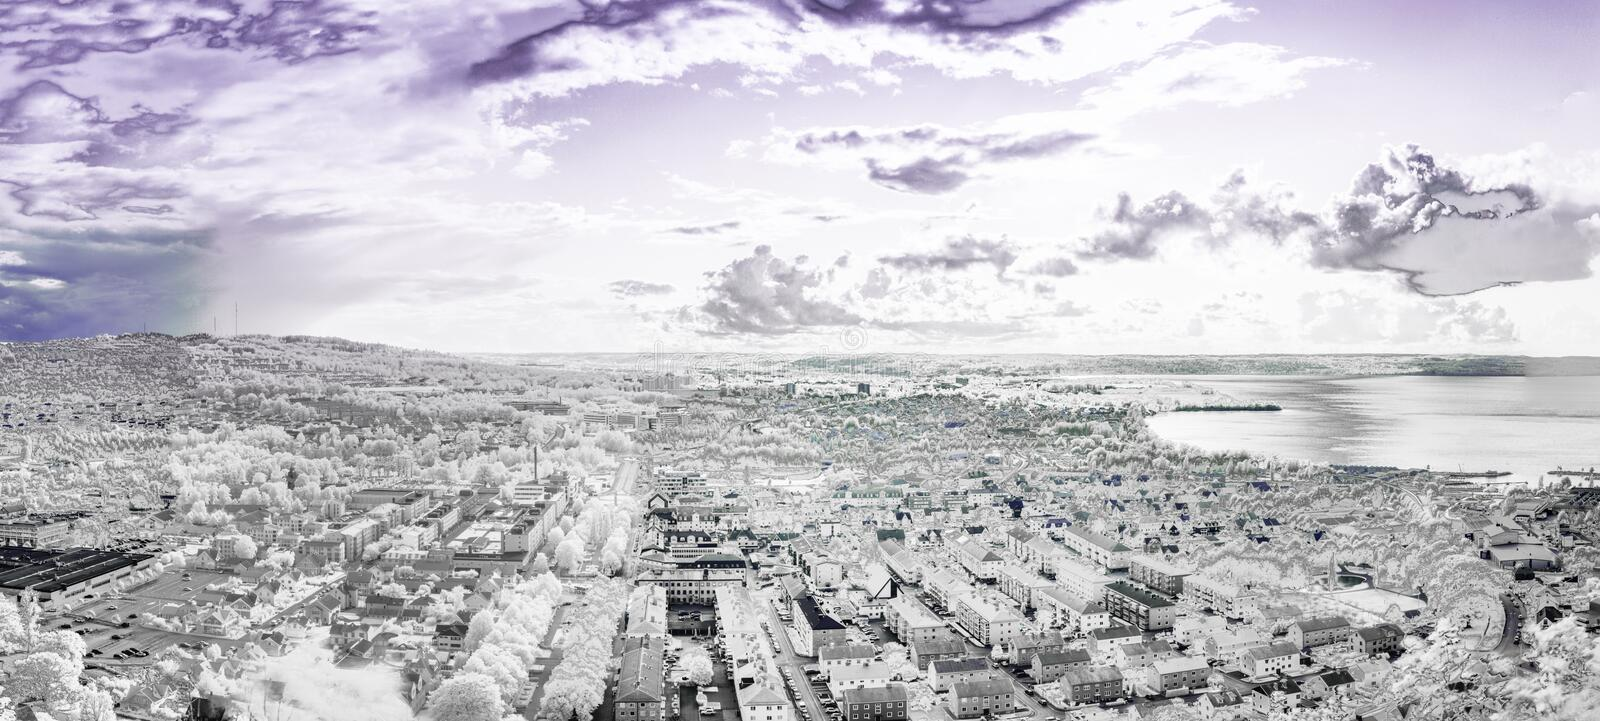 Huskvarna Sweden. The City of Jonkoping from Huskvarna  lookout in Sweden in infrared an ultraviolet royalty free stock images